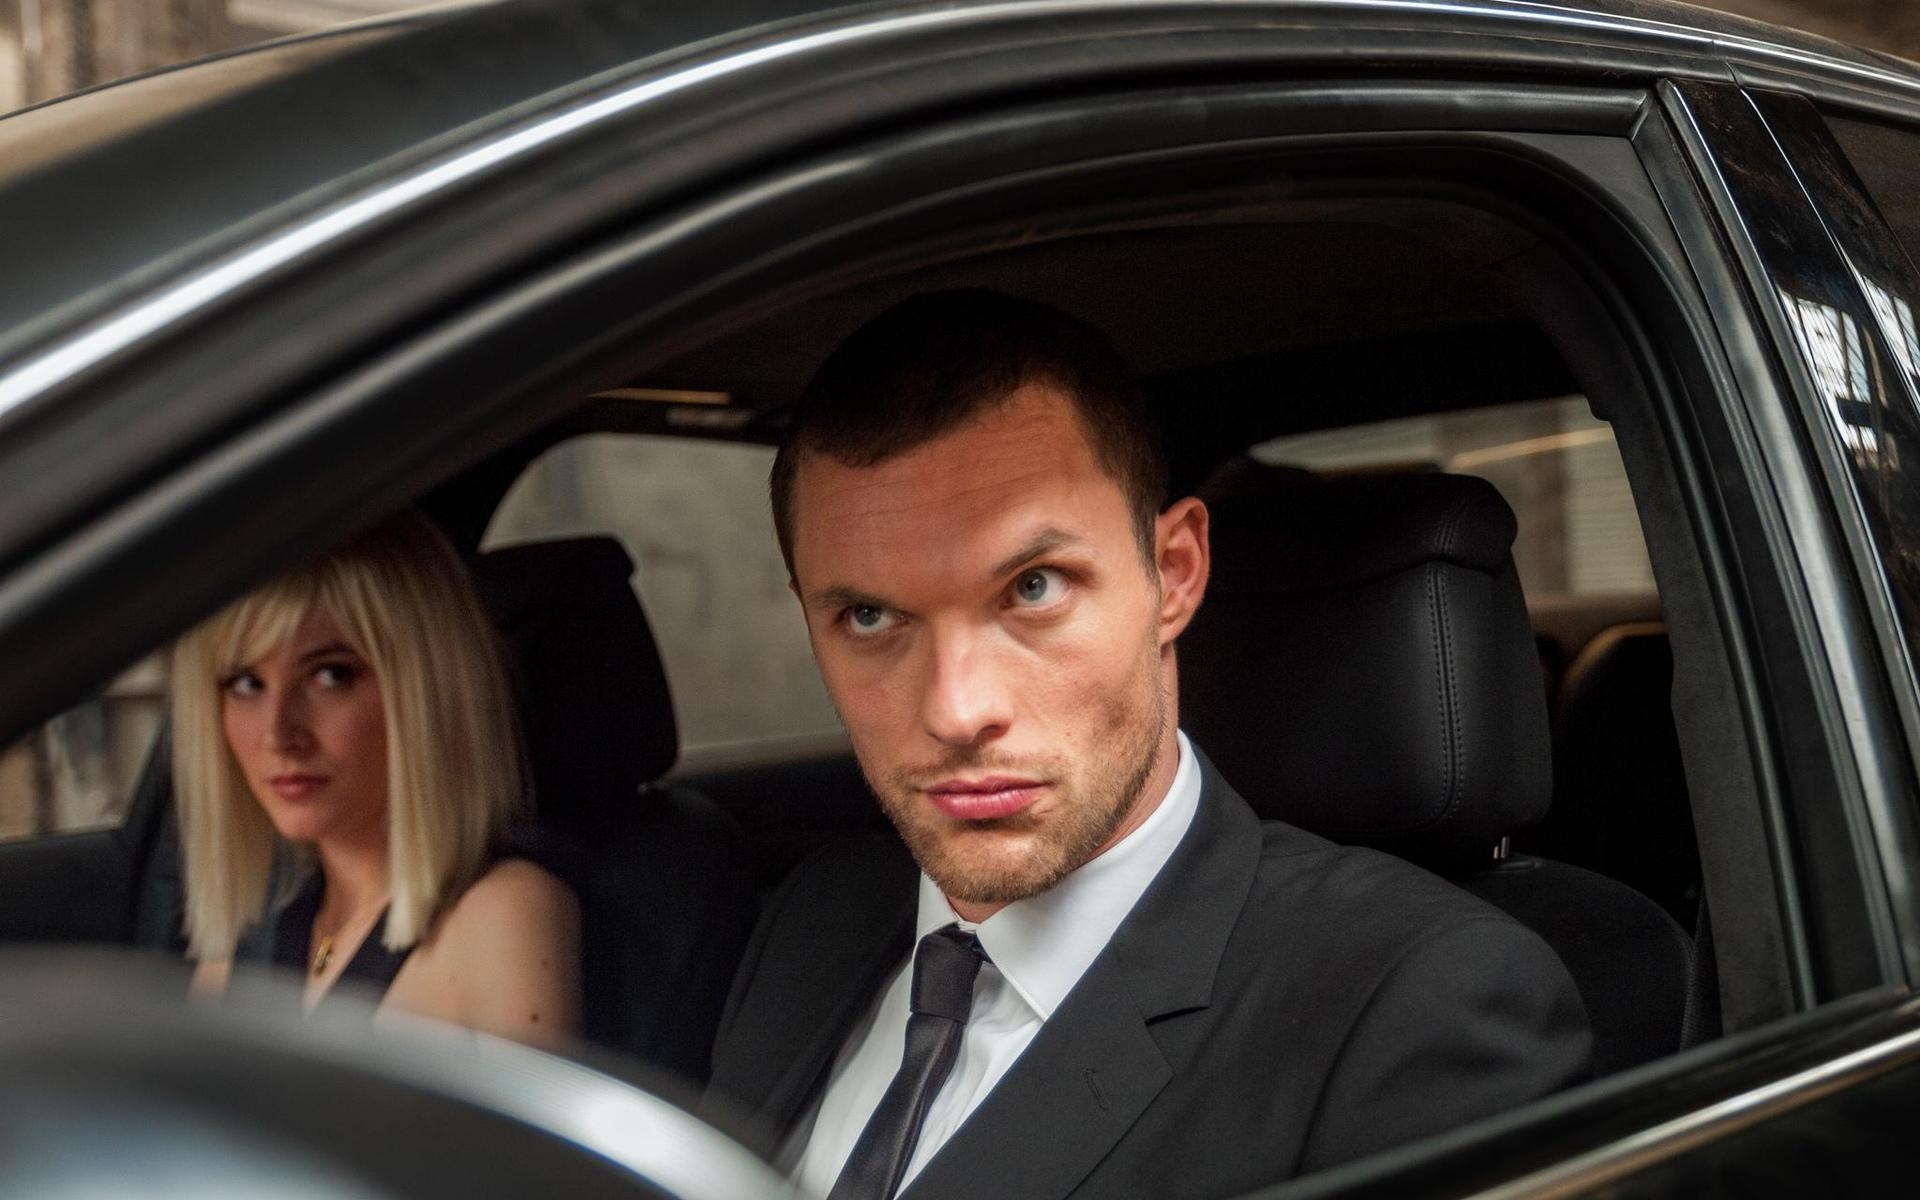 Transporter Refueled for 1920 x 1200 widescreen resolution